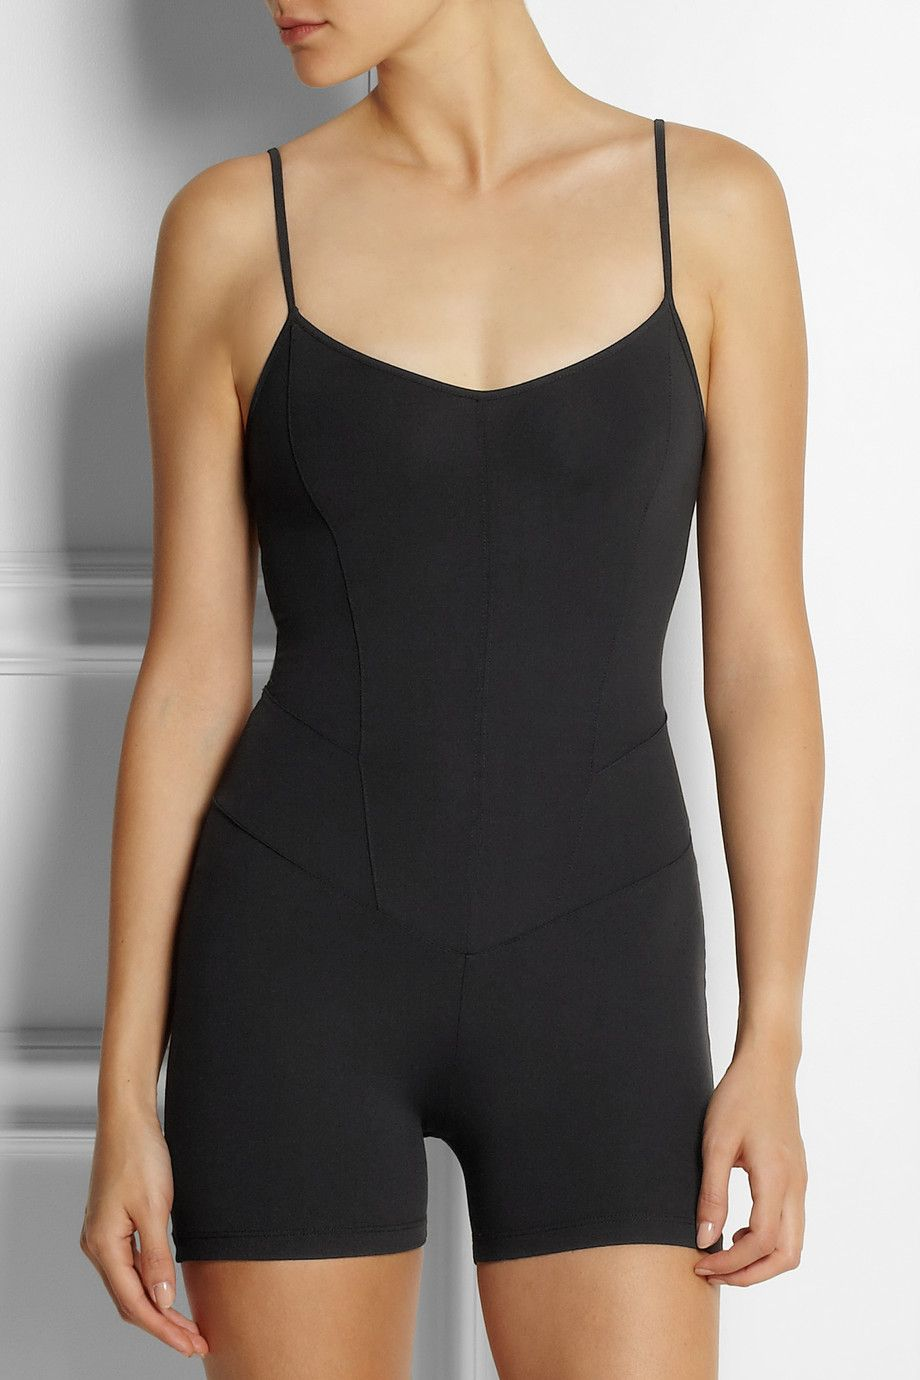 Collections Online Clearance Choice Ribbed Stretch-knit Leotard - Black Live The Process vK0QioAtd